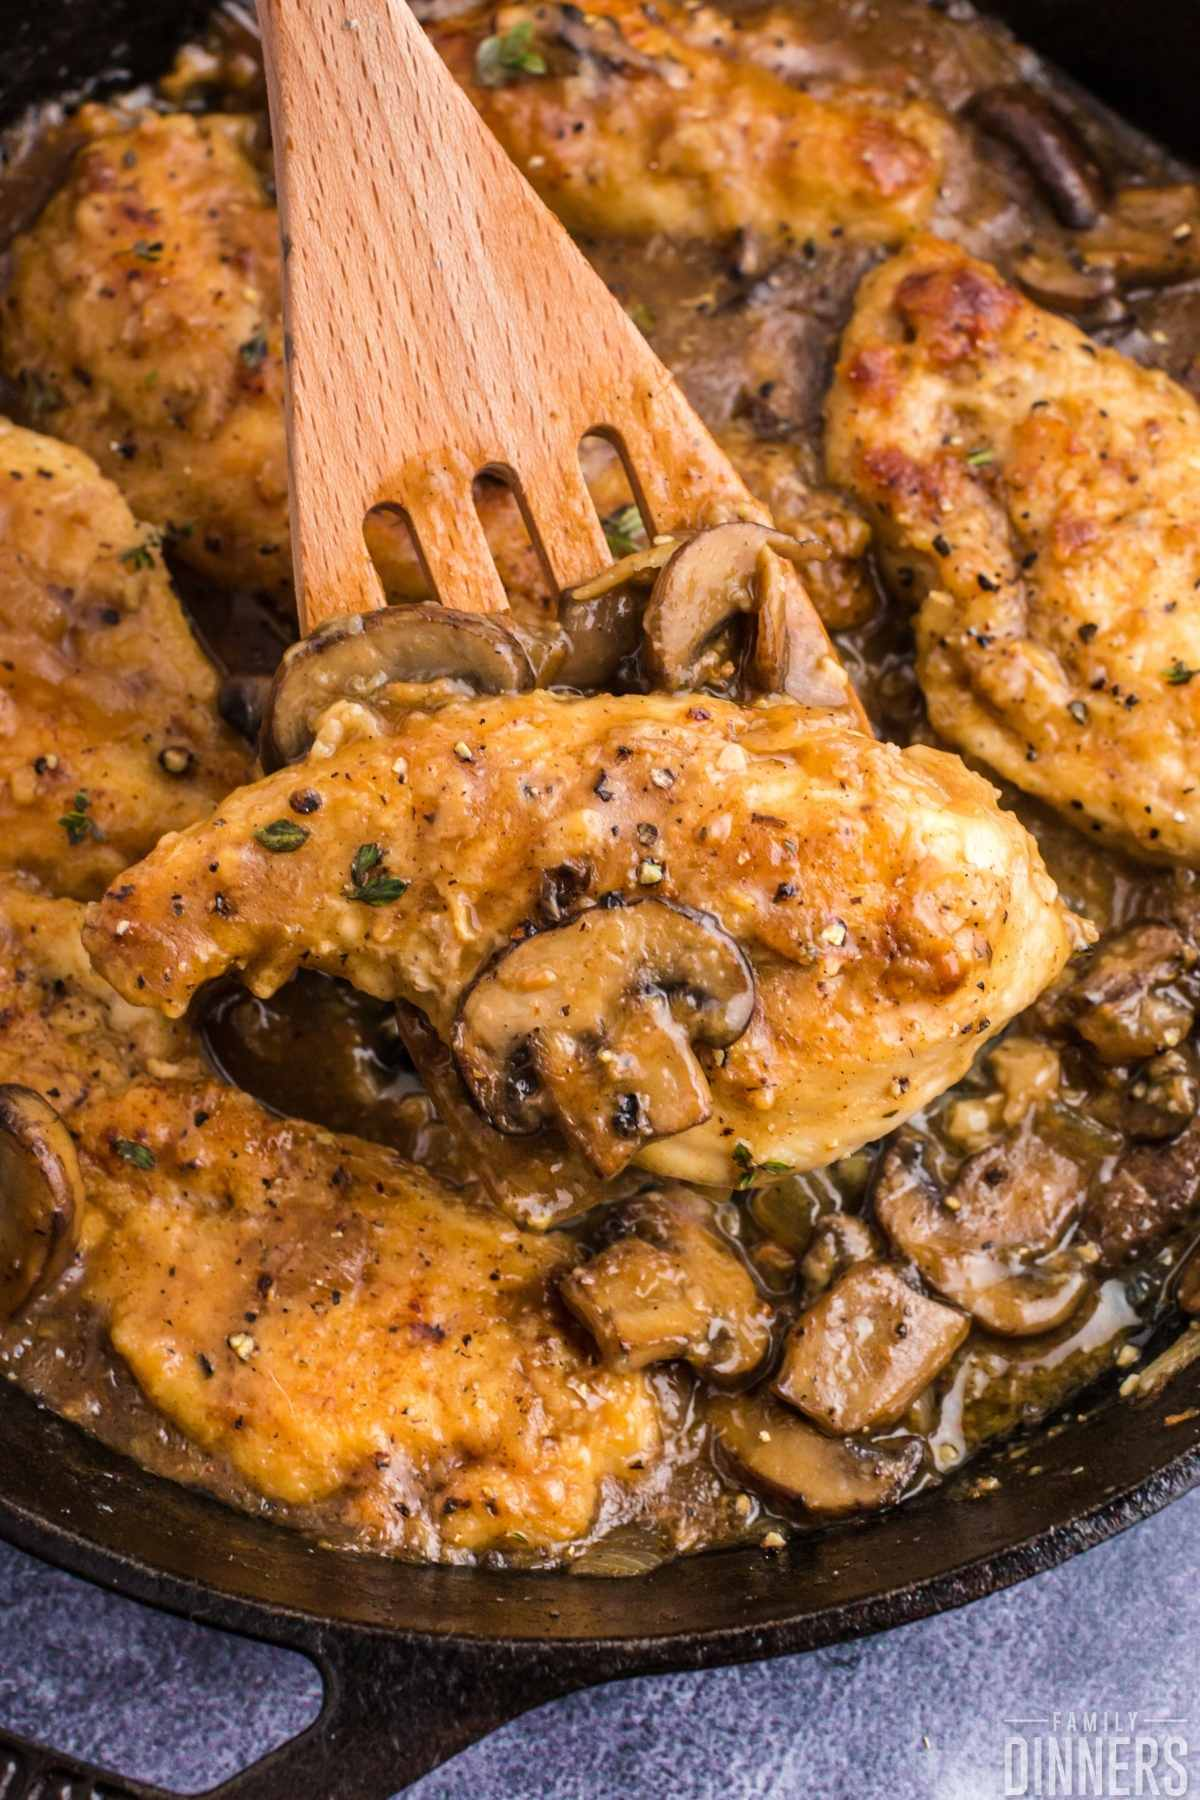 Golden cooked chicken surrounded by mushroom sauce in black cast iron pan.